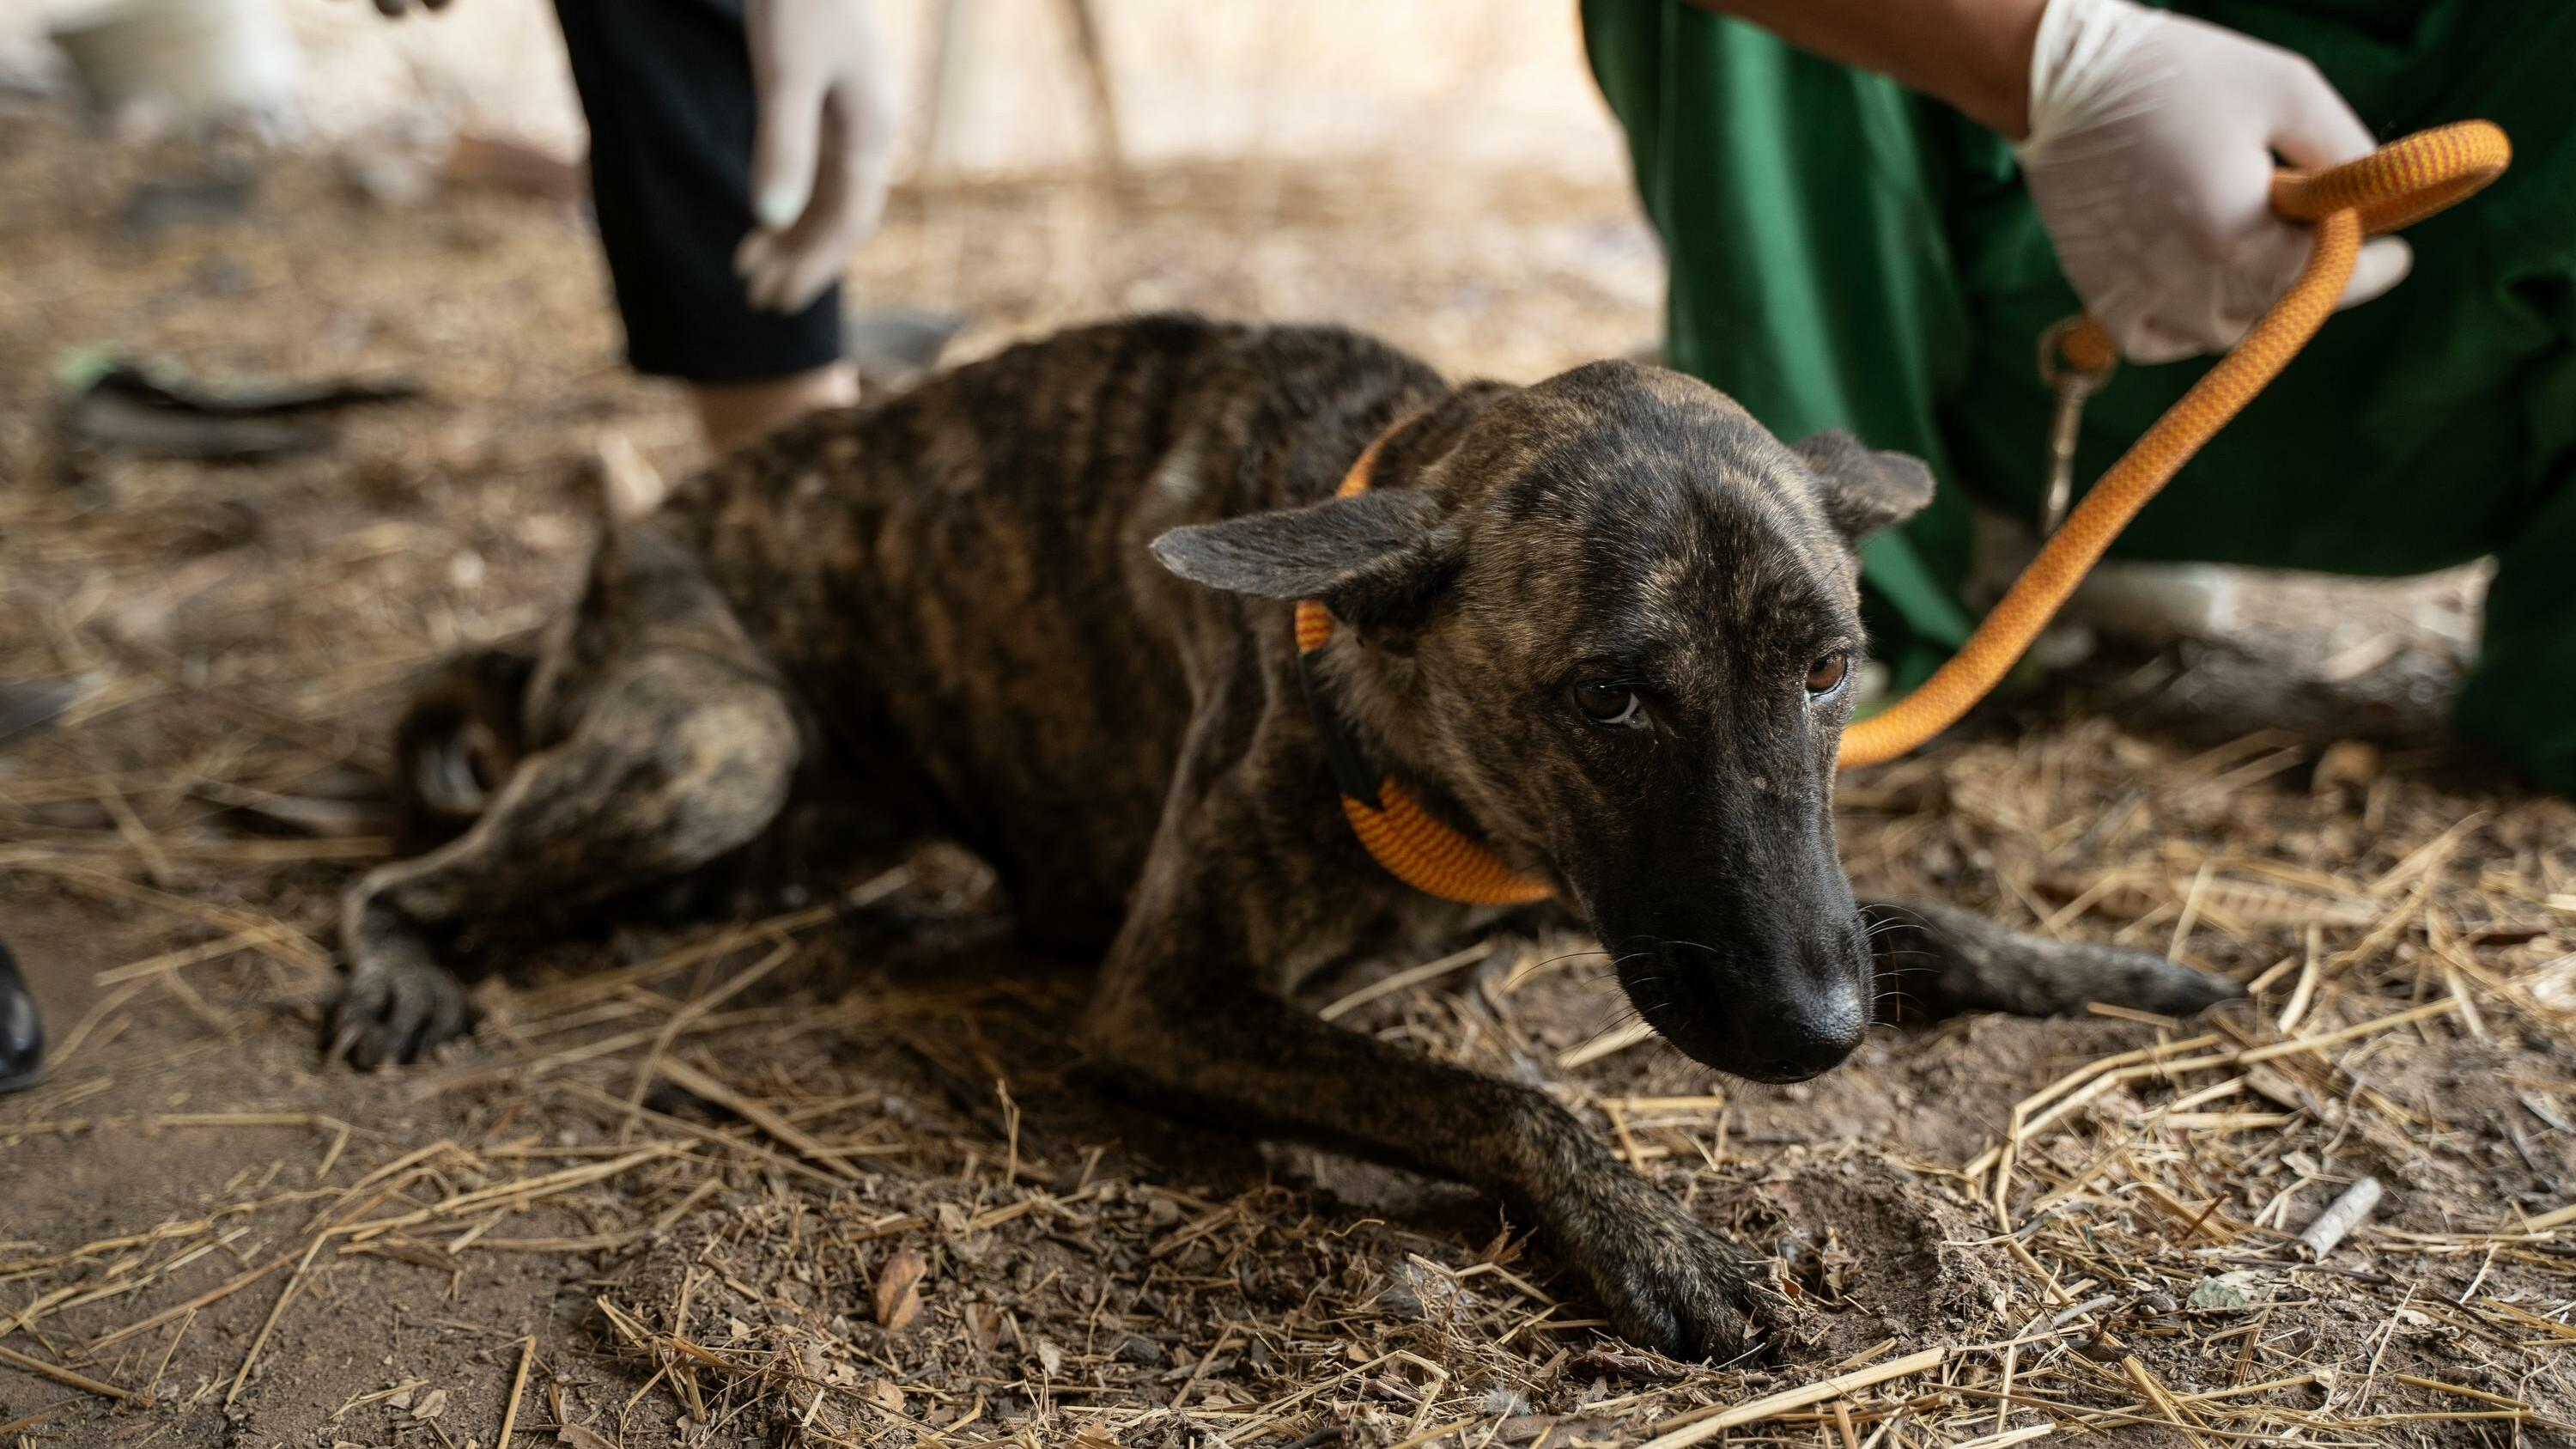 Rescued dog Julie in need of medical care